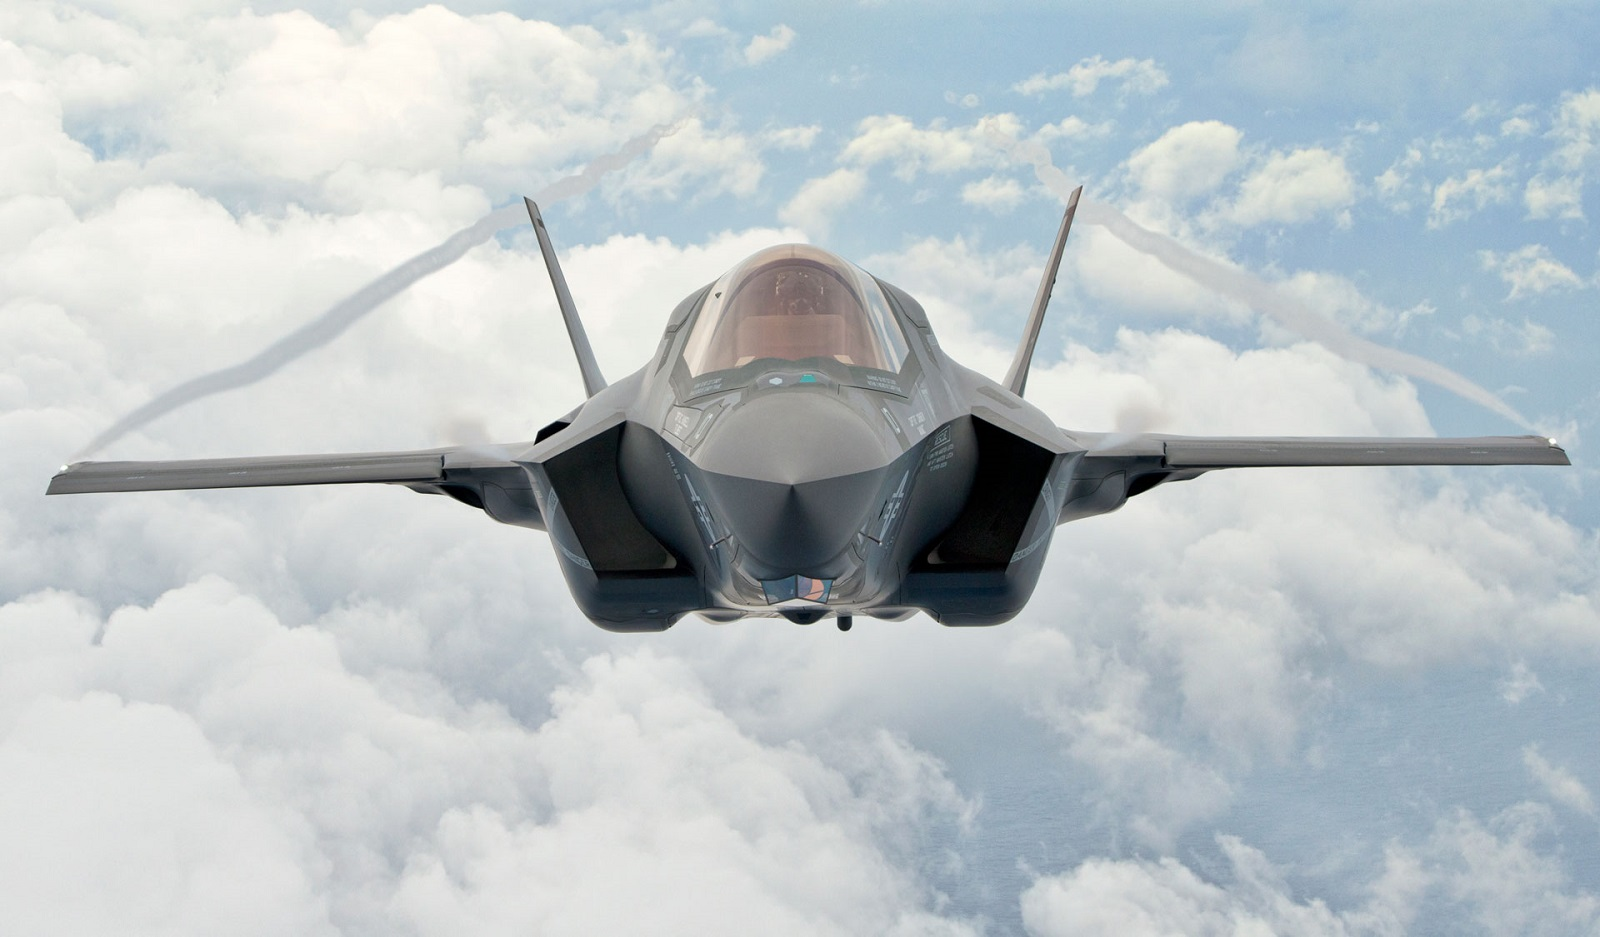 Israeli F-35s over Iran? Don't Be Shocked, But It's Possible. Here's